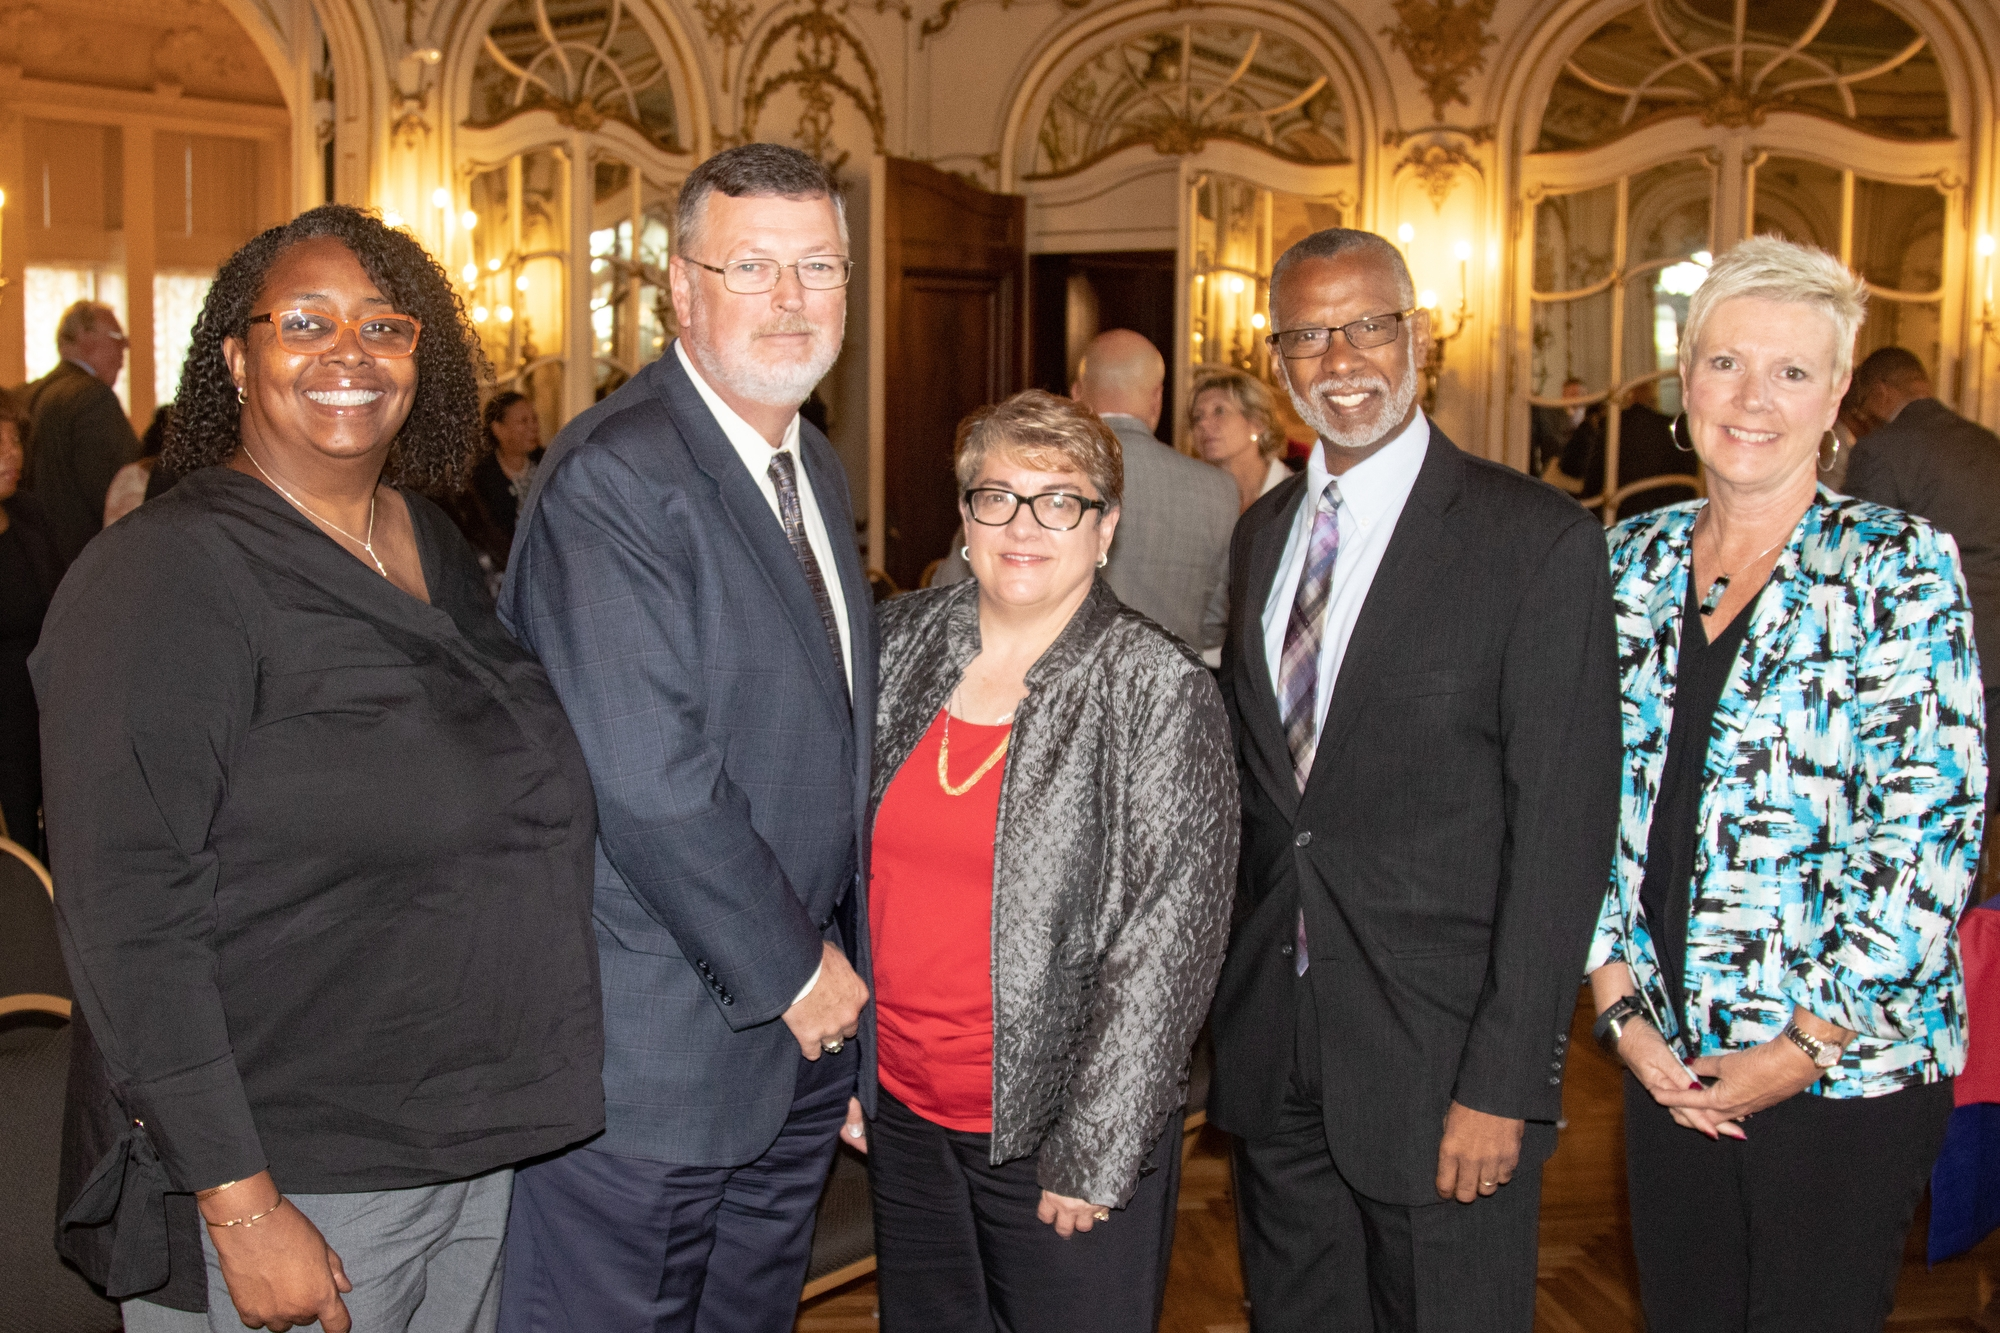 October 4, 2018: Sen. Haywood Lauds PAsmart Initiative in Manufacturing Day Roundtable